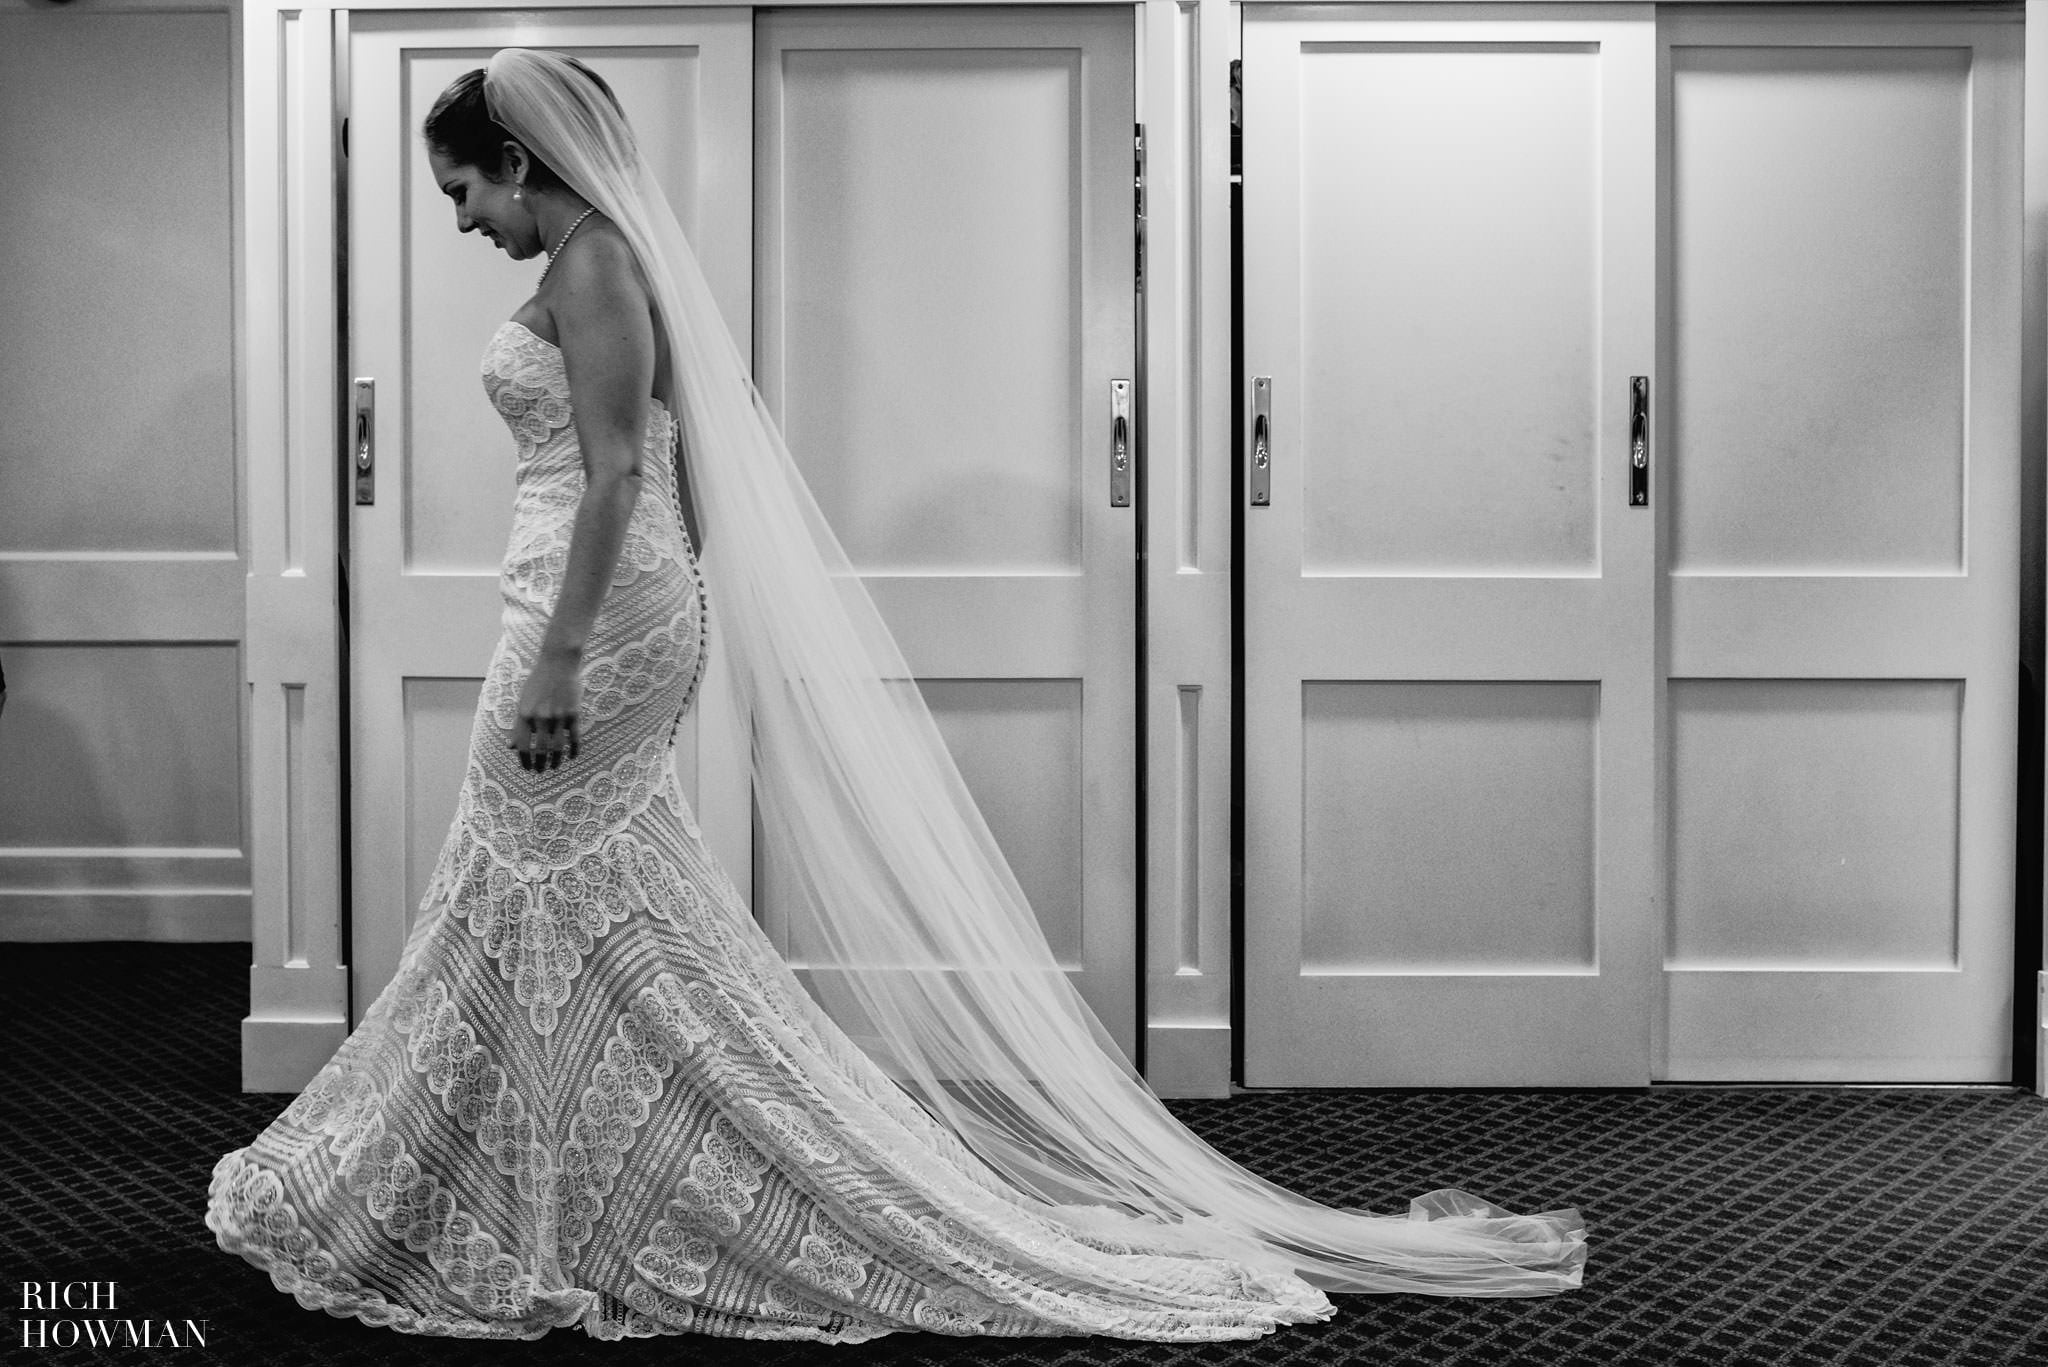 The brides amazing wedding dress, photographed in black and white at Cambridge Cottage.